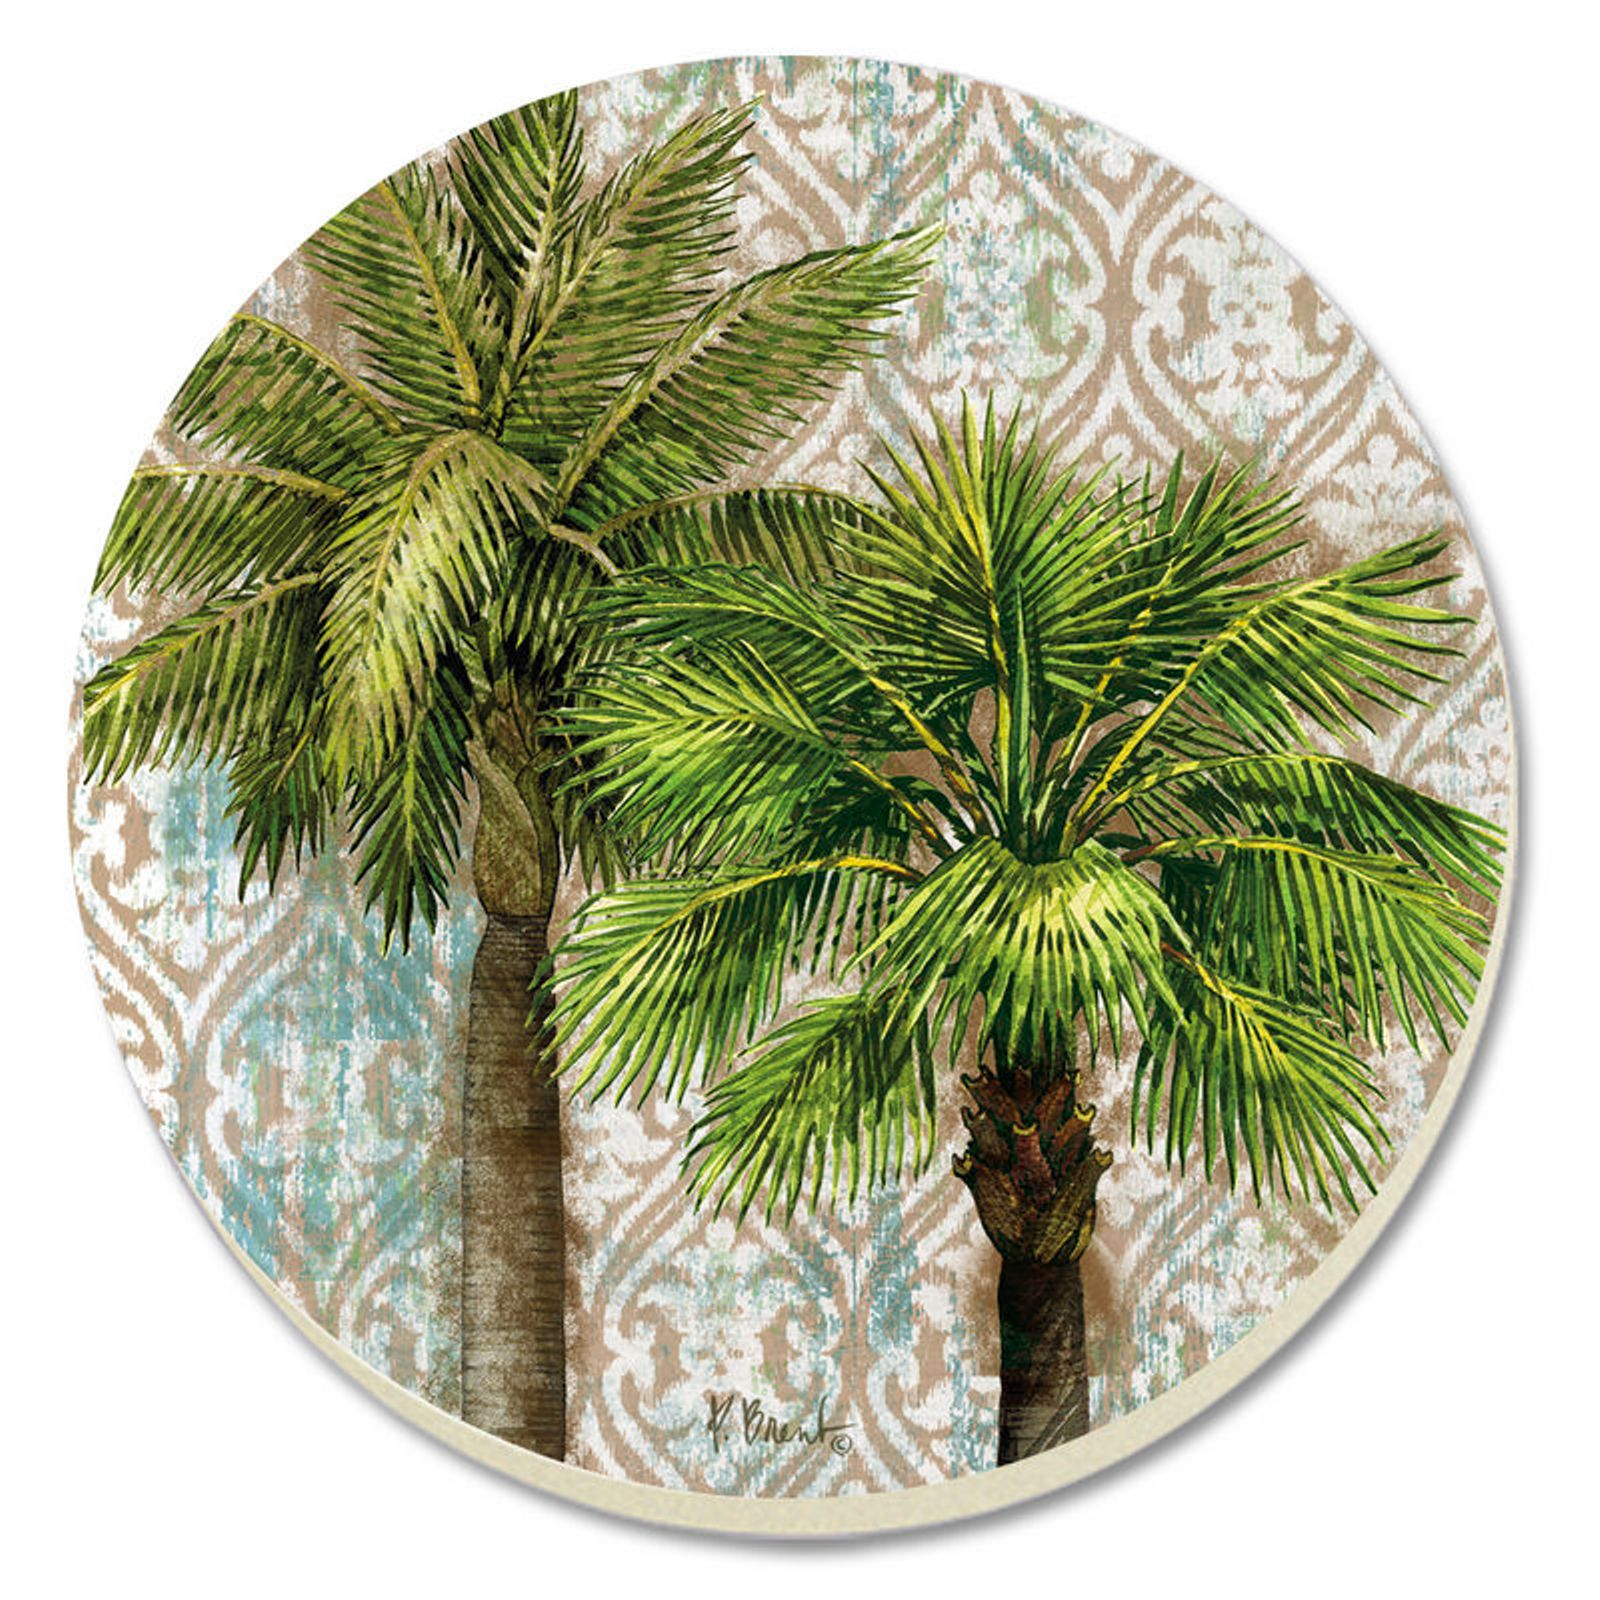 Aqua escape palm trees 4 inch round absorbent stone coasters set of 4 ebay - Stone absorbent coasters ...